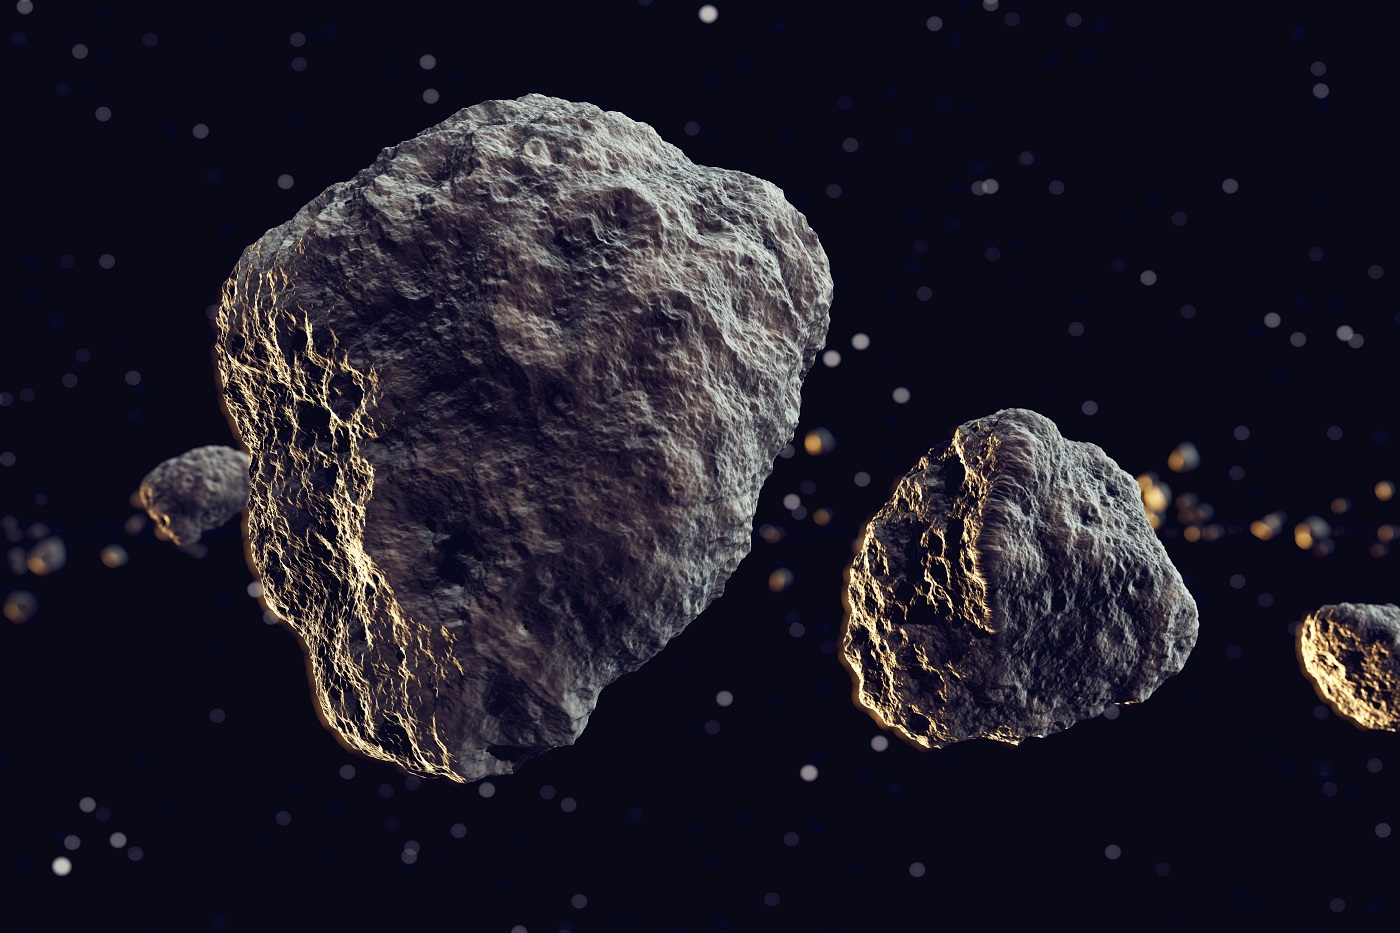 Closeup on meteor lumps in space. Dark background. Suitable for any fantasy, astronomy or space related purposes.